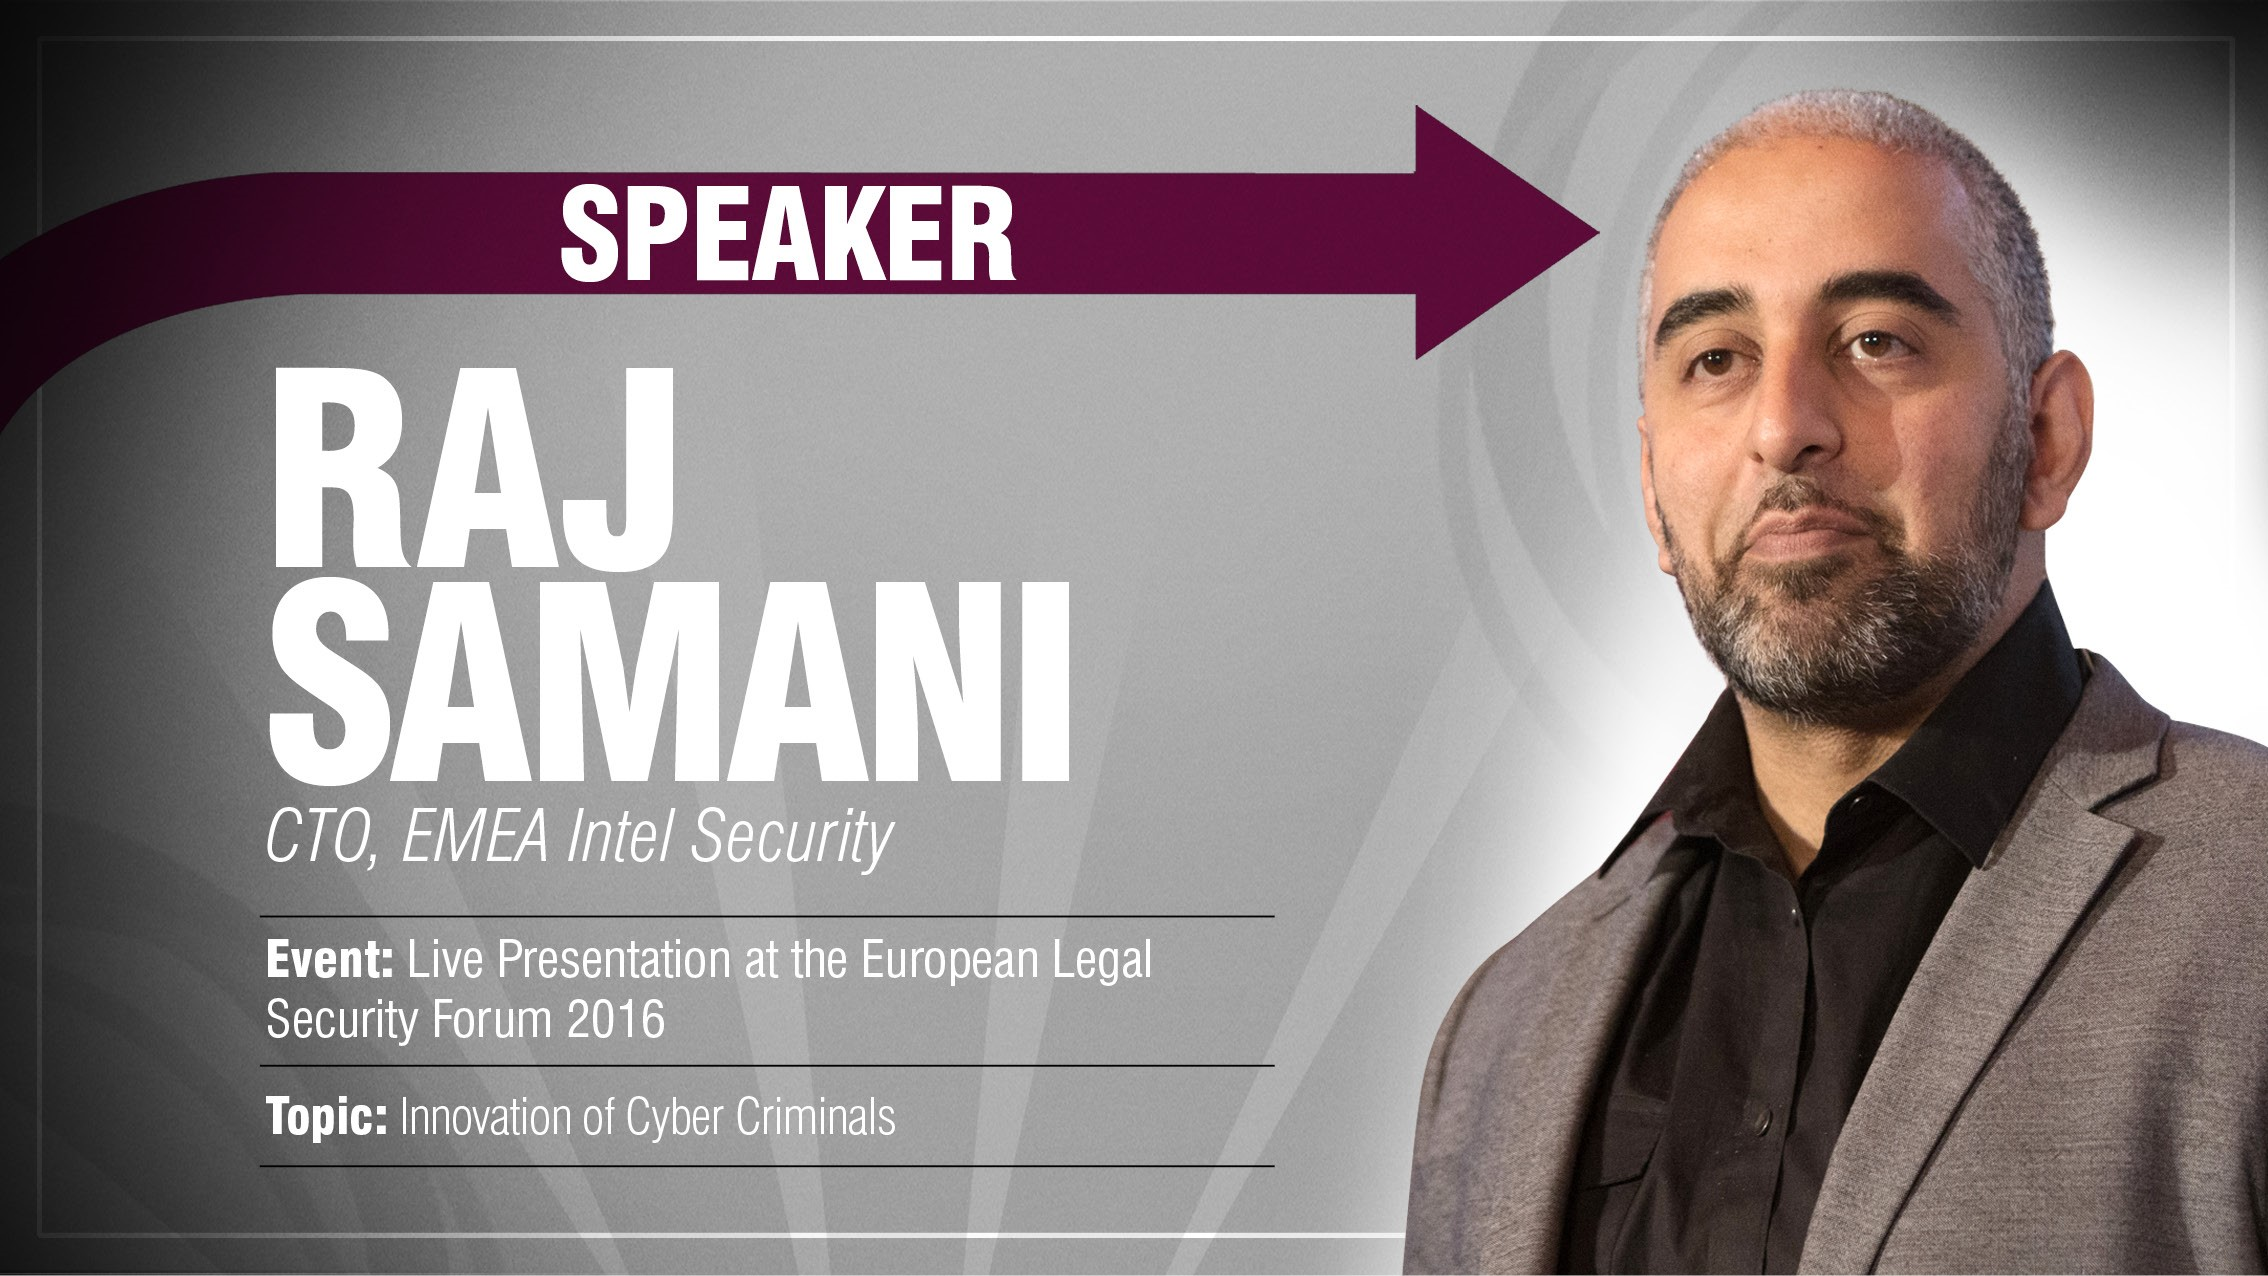 Raj Samani - European Legal Security Forum 2016 - Speaker - Podcast